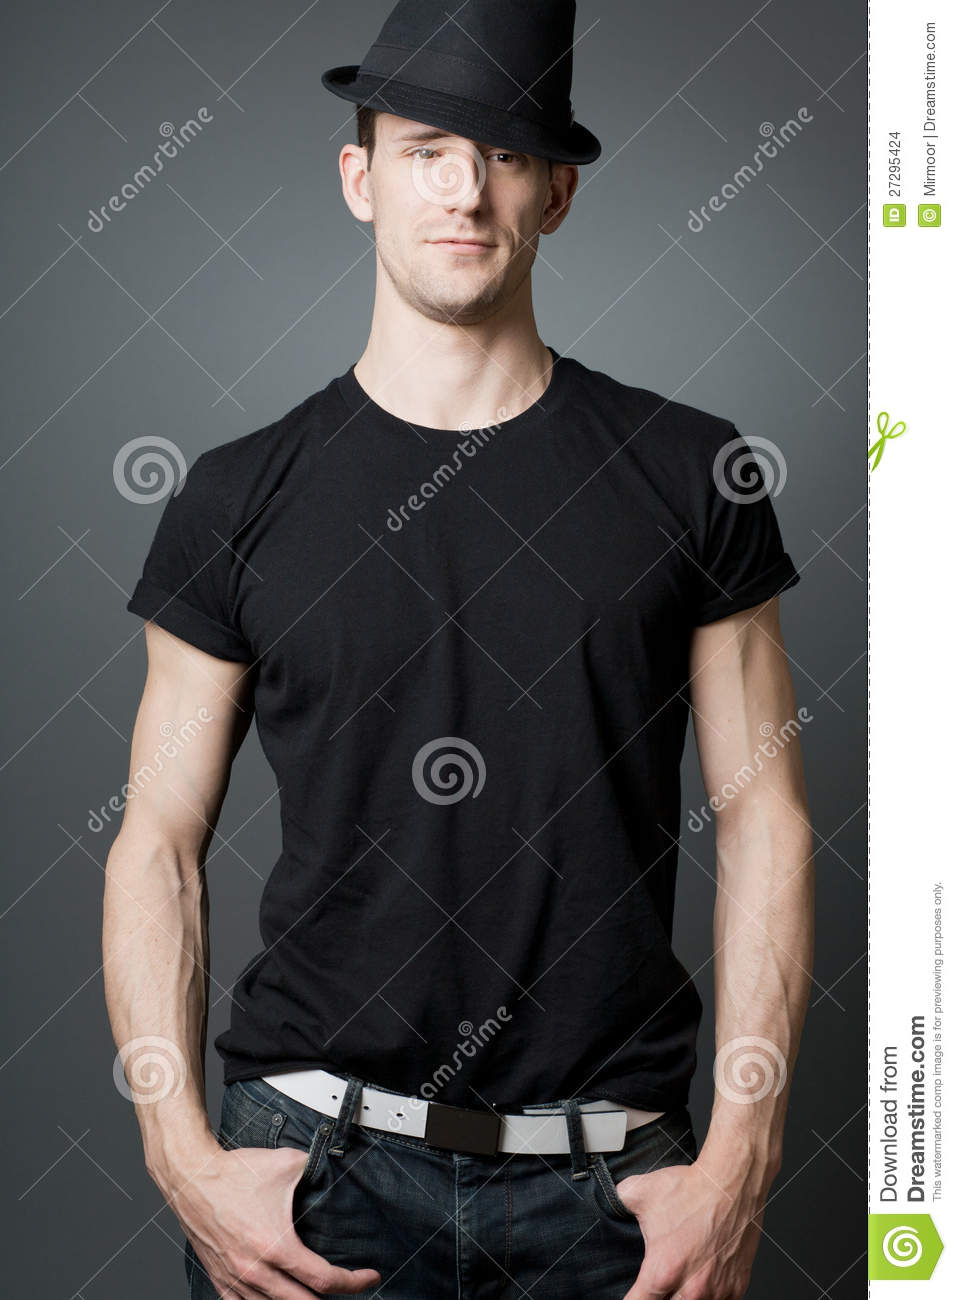 Young Handsome Guy In Black T-shirt. Stock Images - Image: 27295424